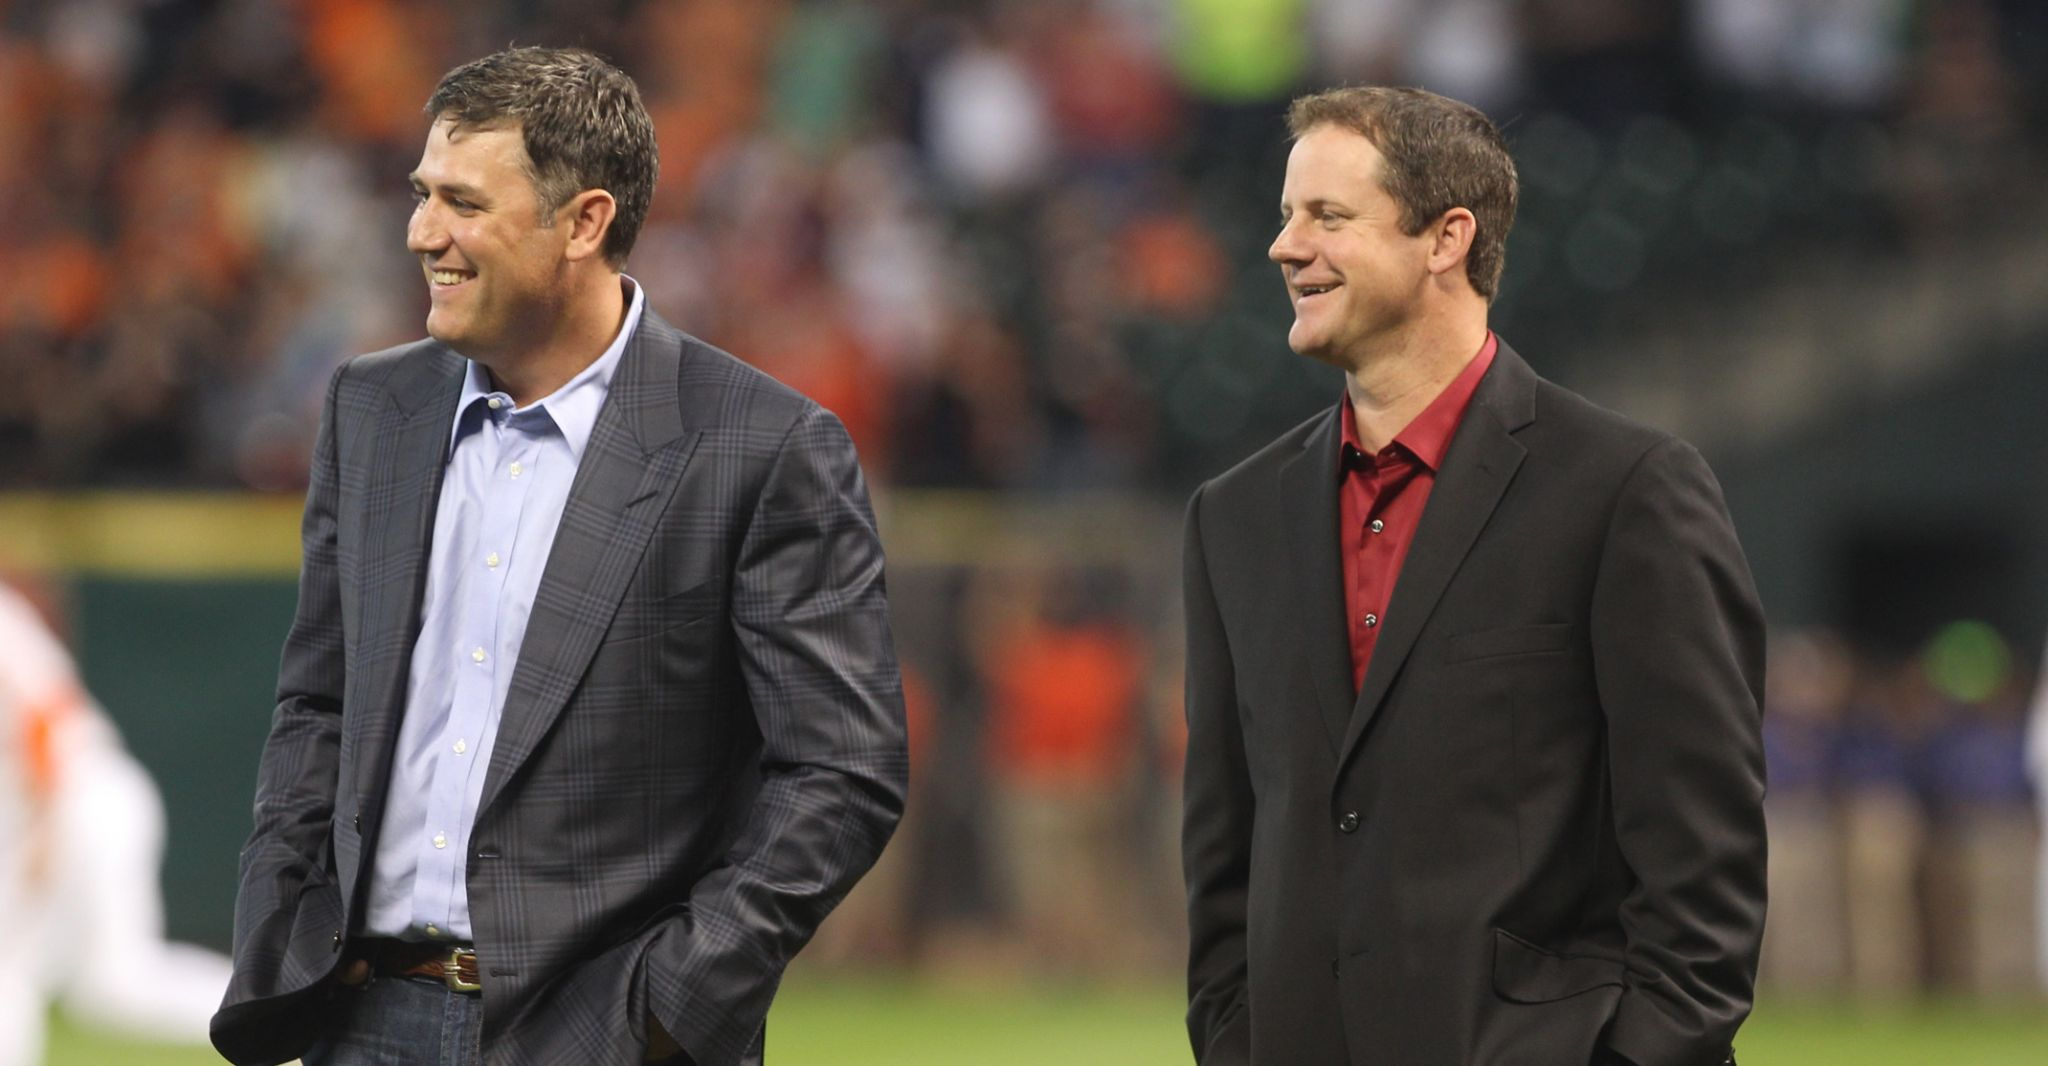 Astros greats Lance Berkman, Roy Oswalt in danger of being one-and-done in Hall of Fame balloting